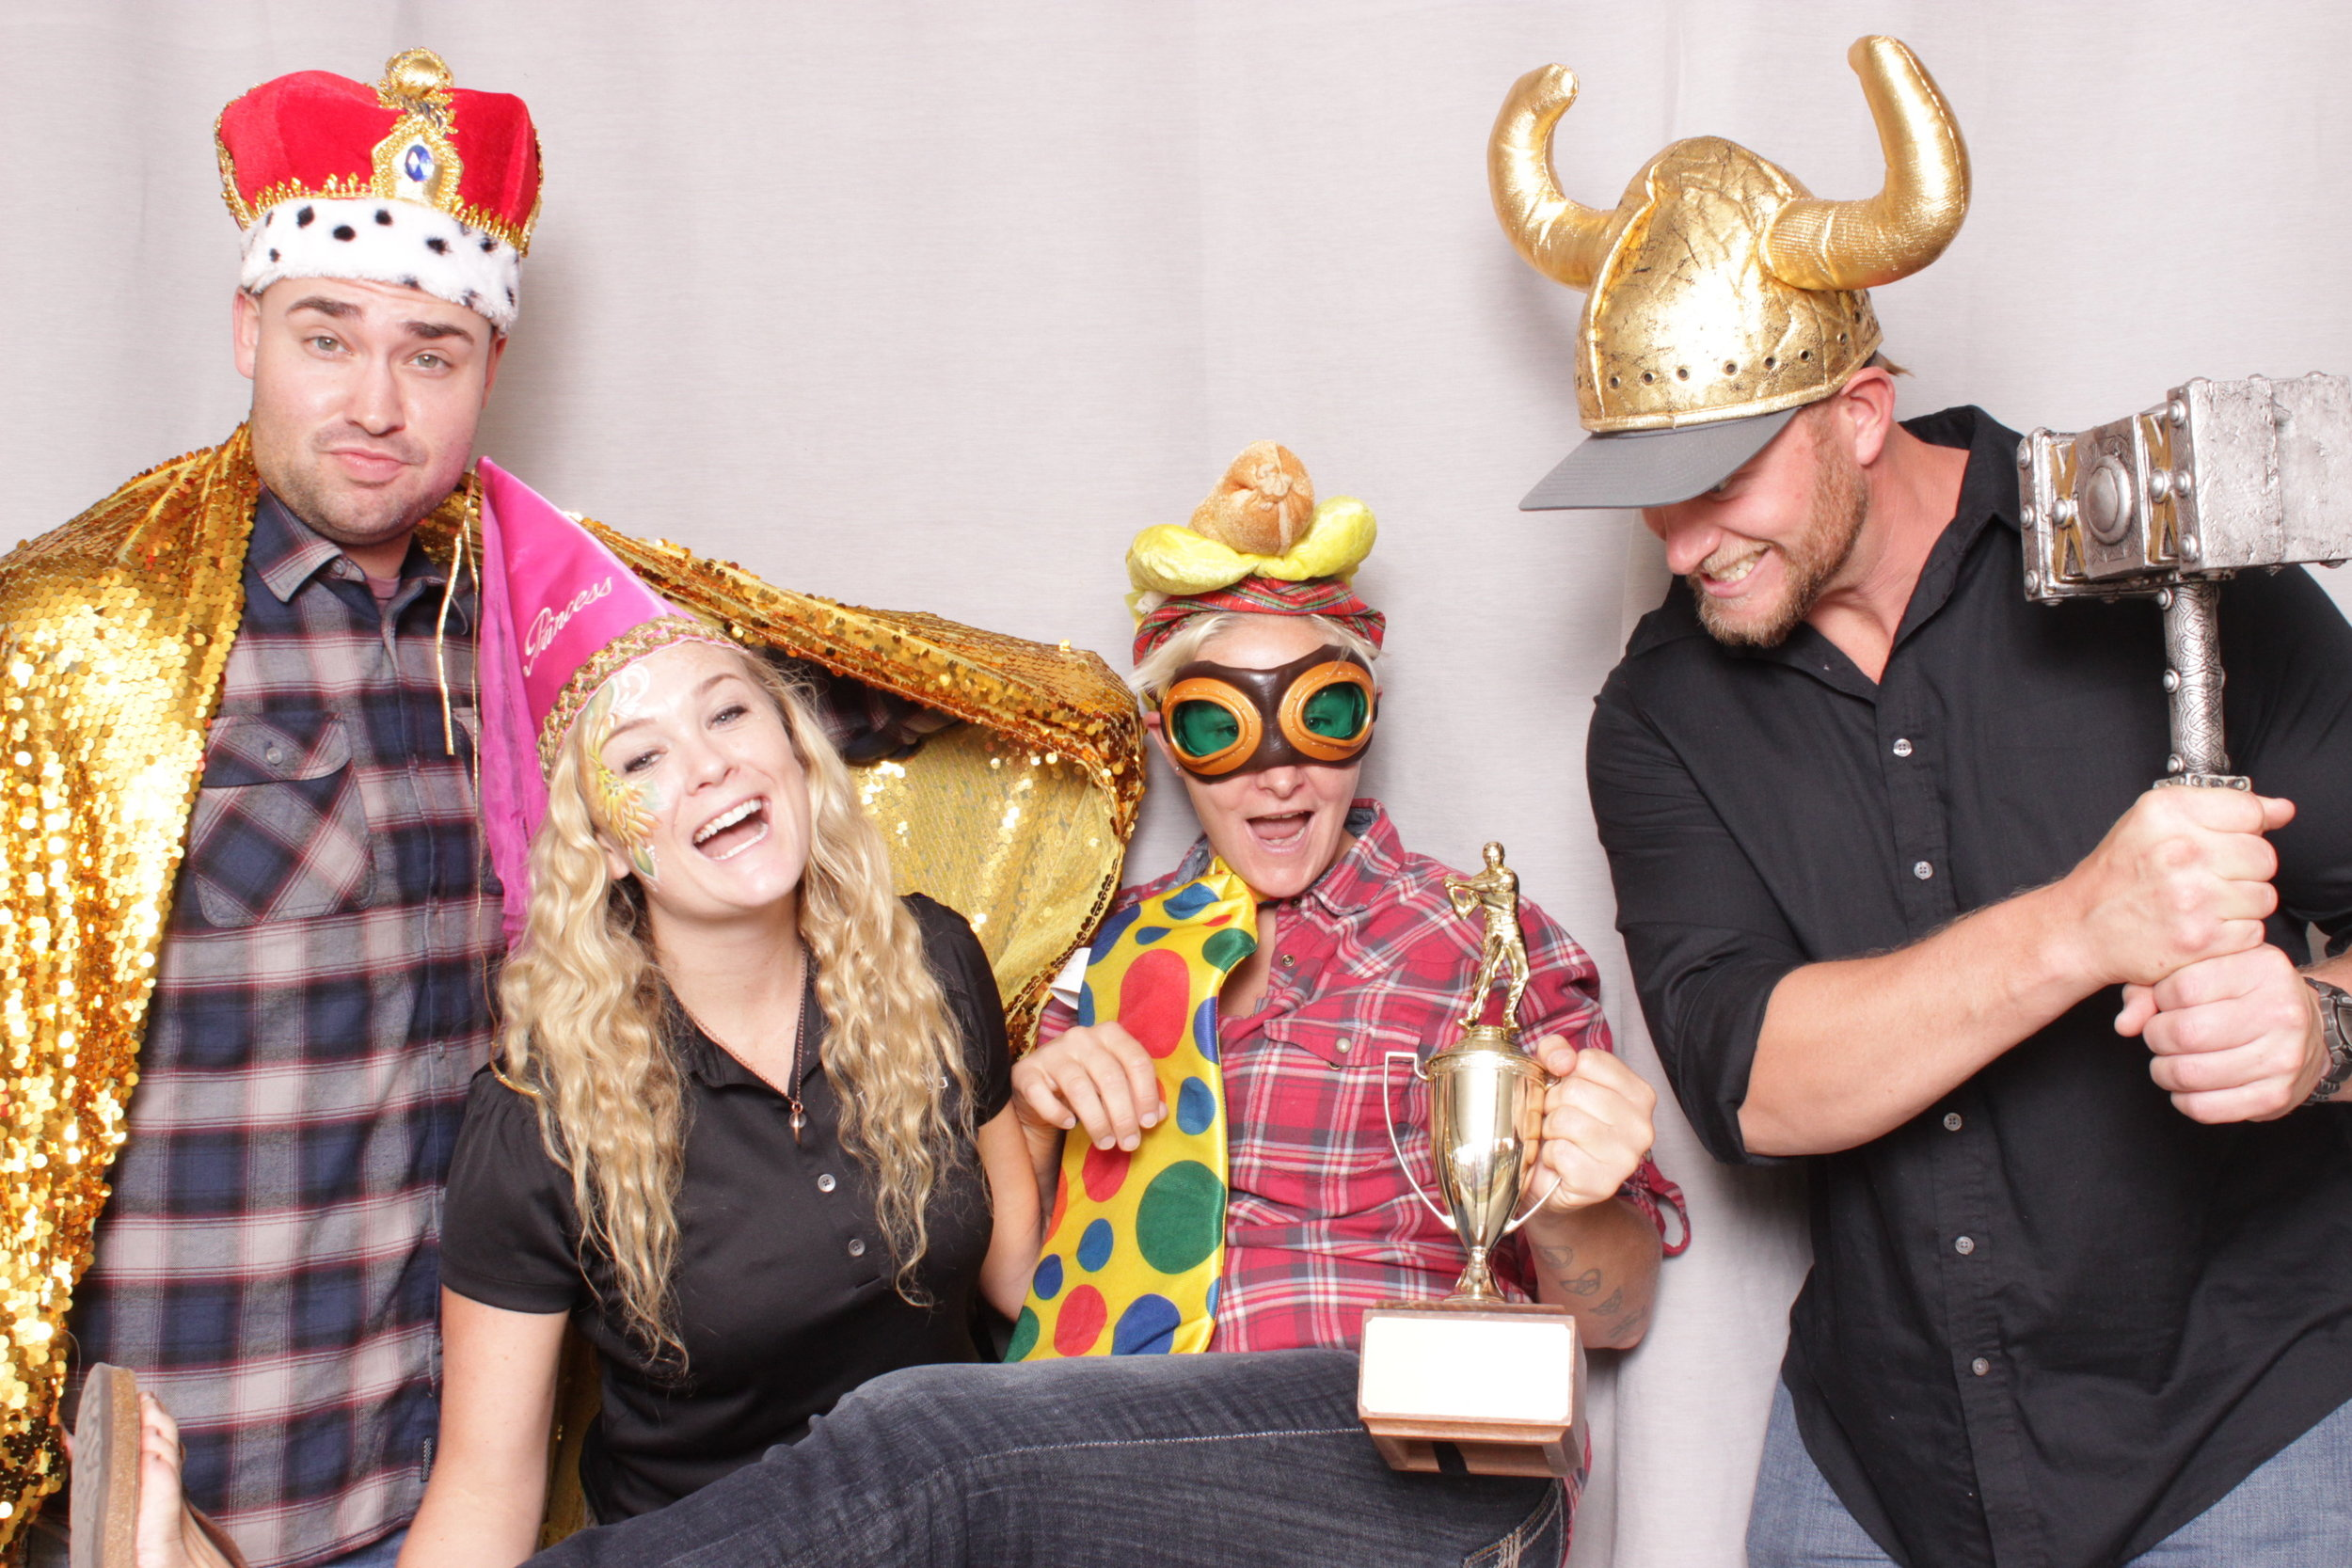 Chico-photo-booth-rental-fun-party-idea